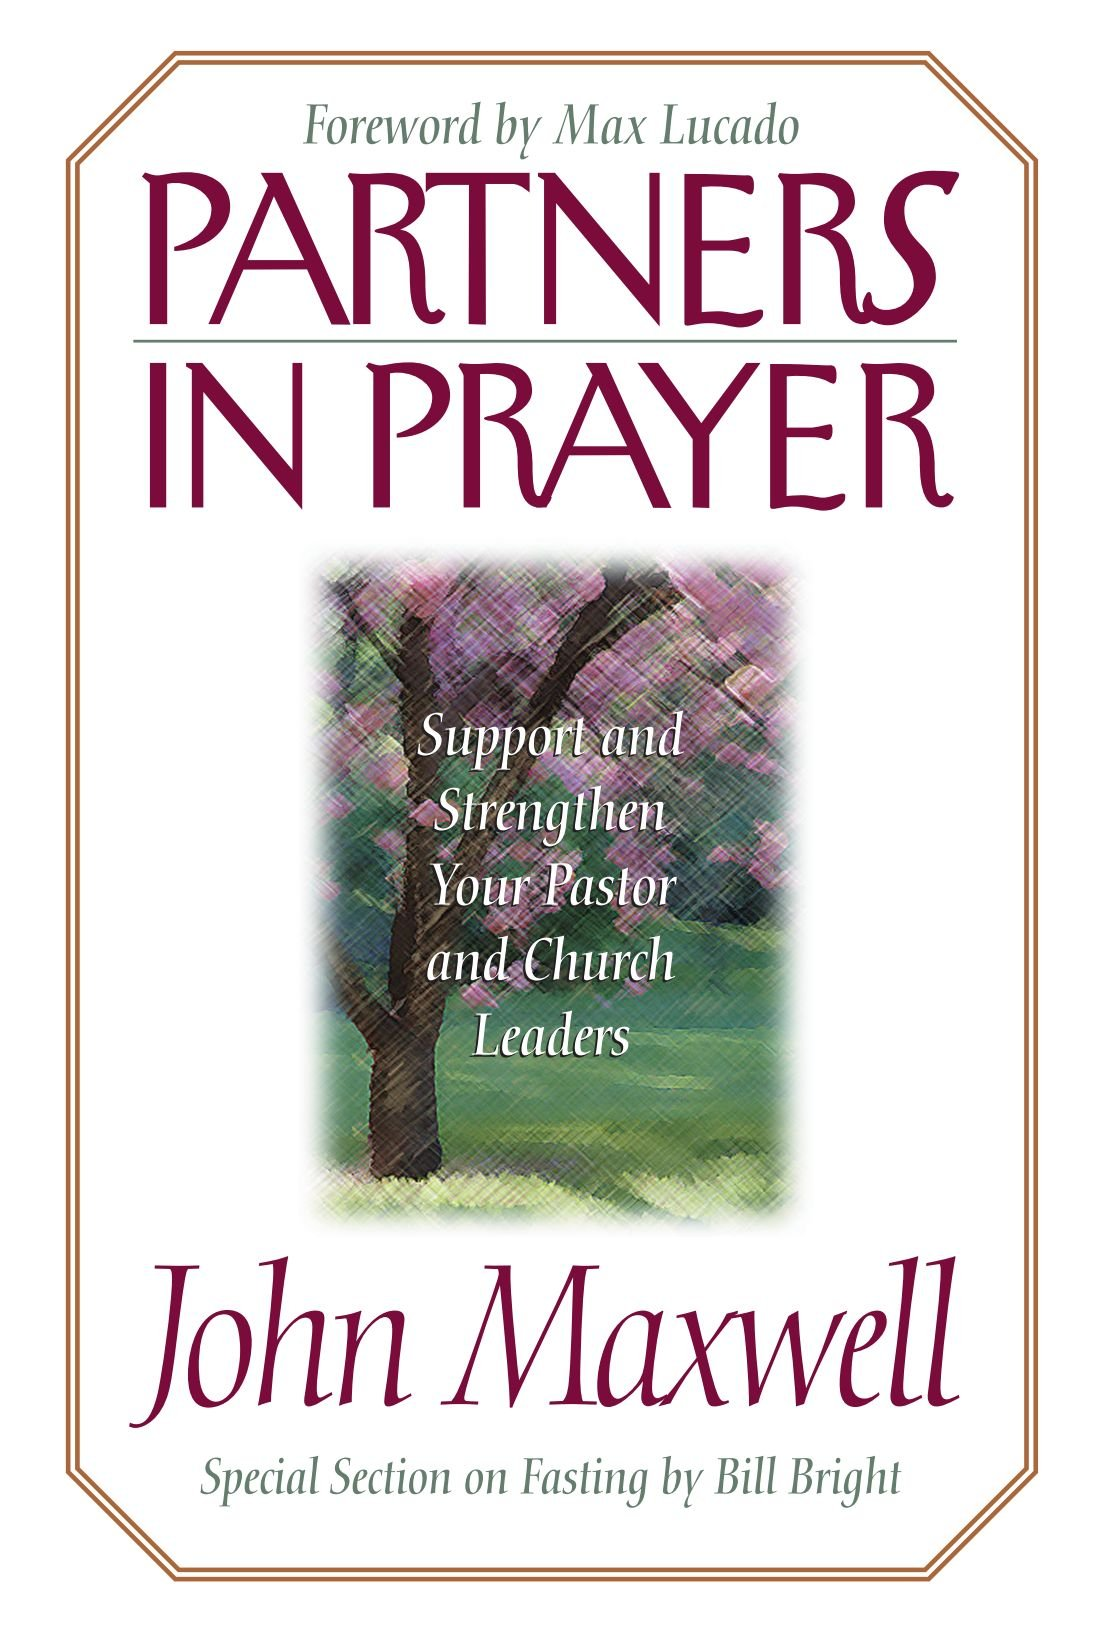 partners in prayer john c maxwell 9780785274391 amazon com books